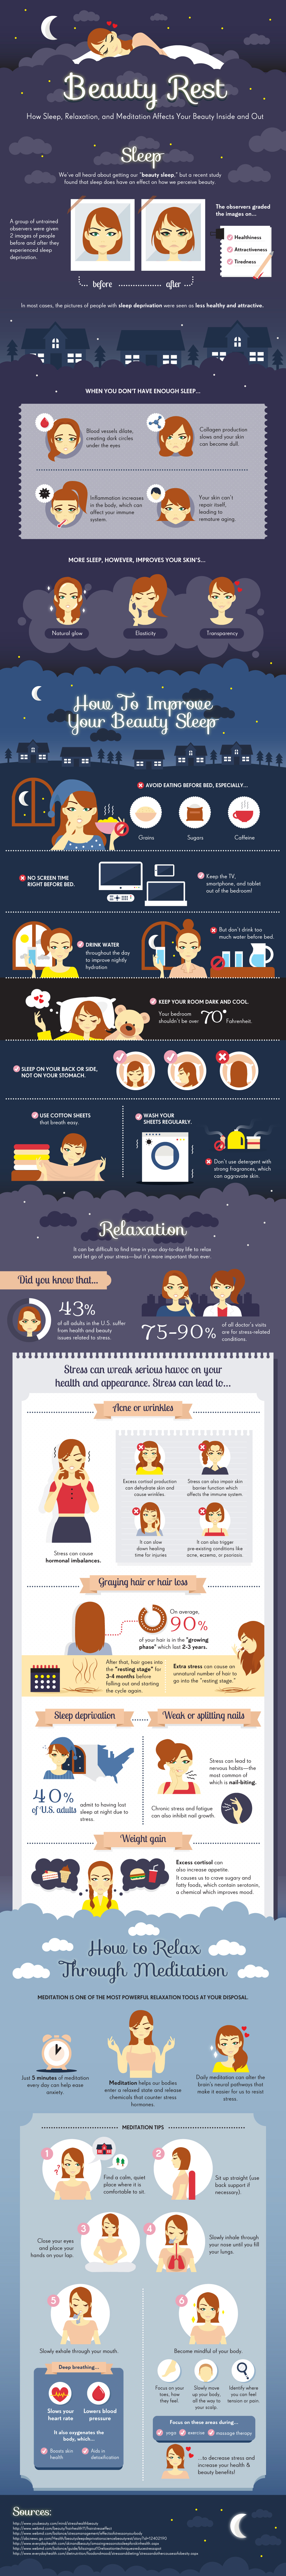 How Sleep, Relaxation, and Meditation Affect Your Beauty Inside and Out